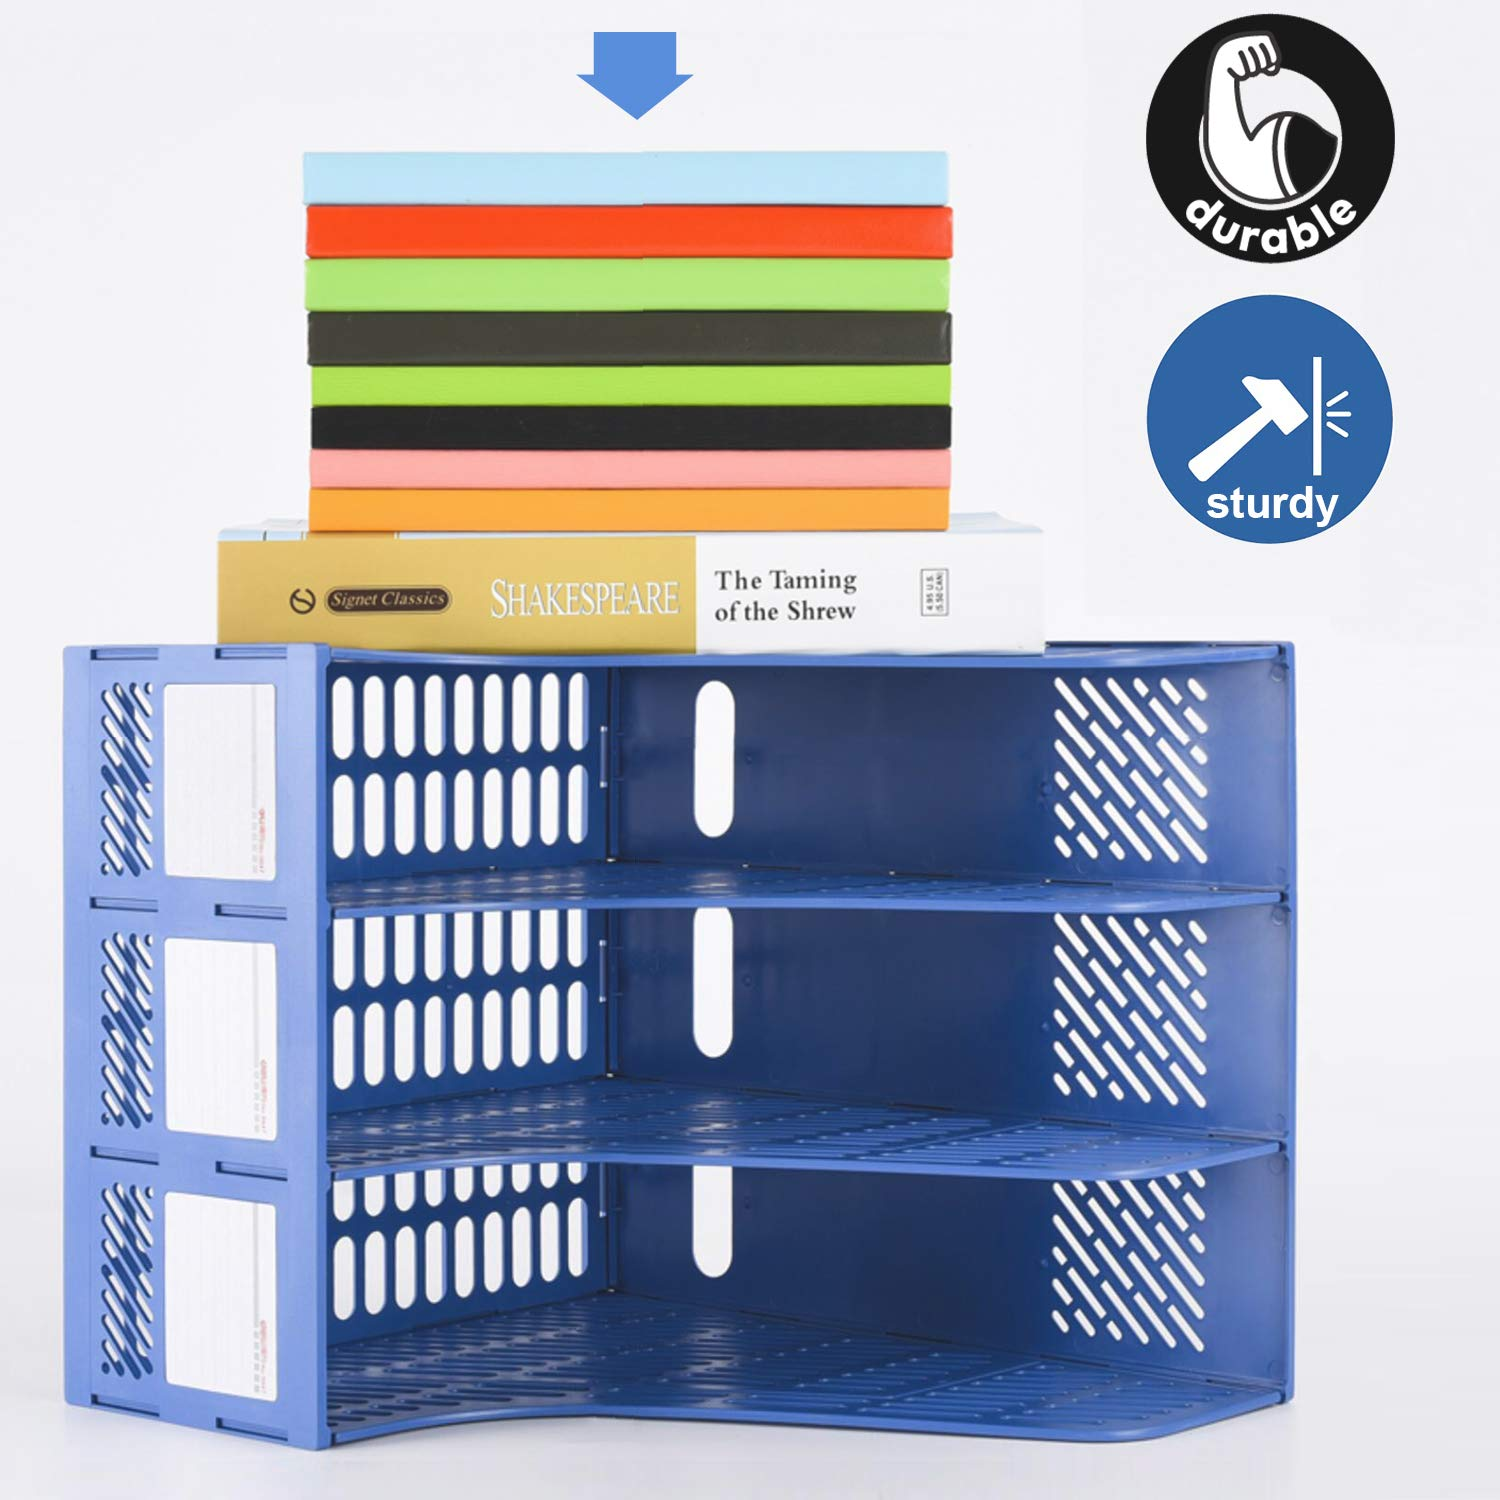 Leven Desk Organizer, Large Space Desktop File Organizer with 3 Vertical Compartments for Office Organization